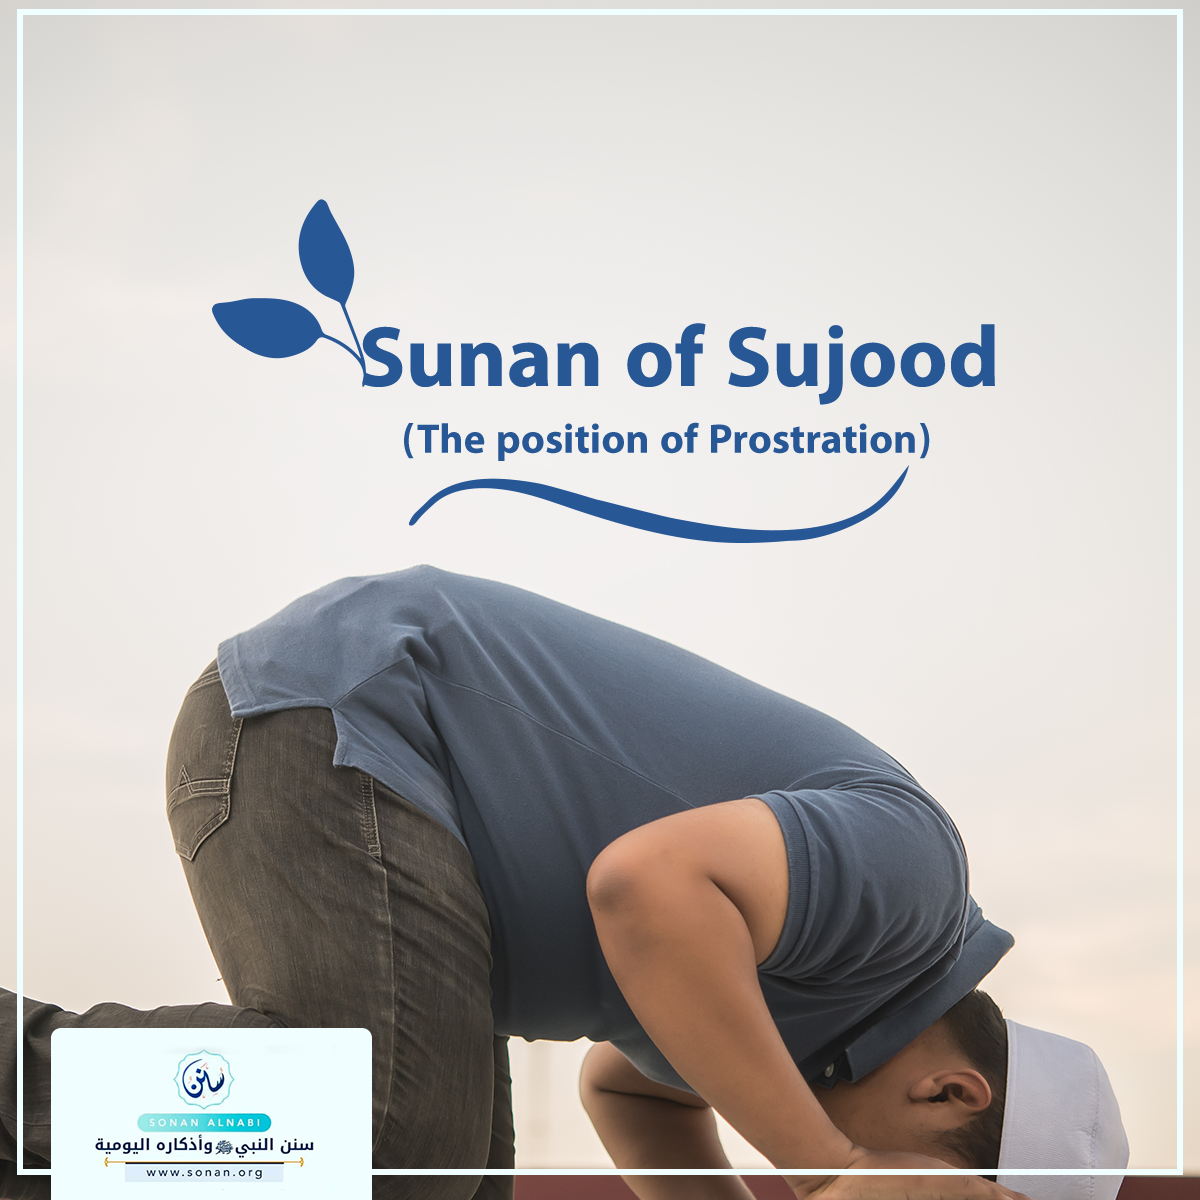 Sunan of Sujood (The position of Prostration).